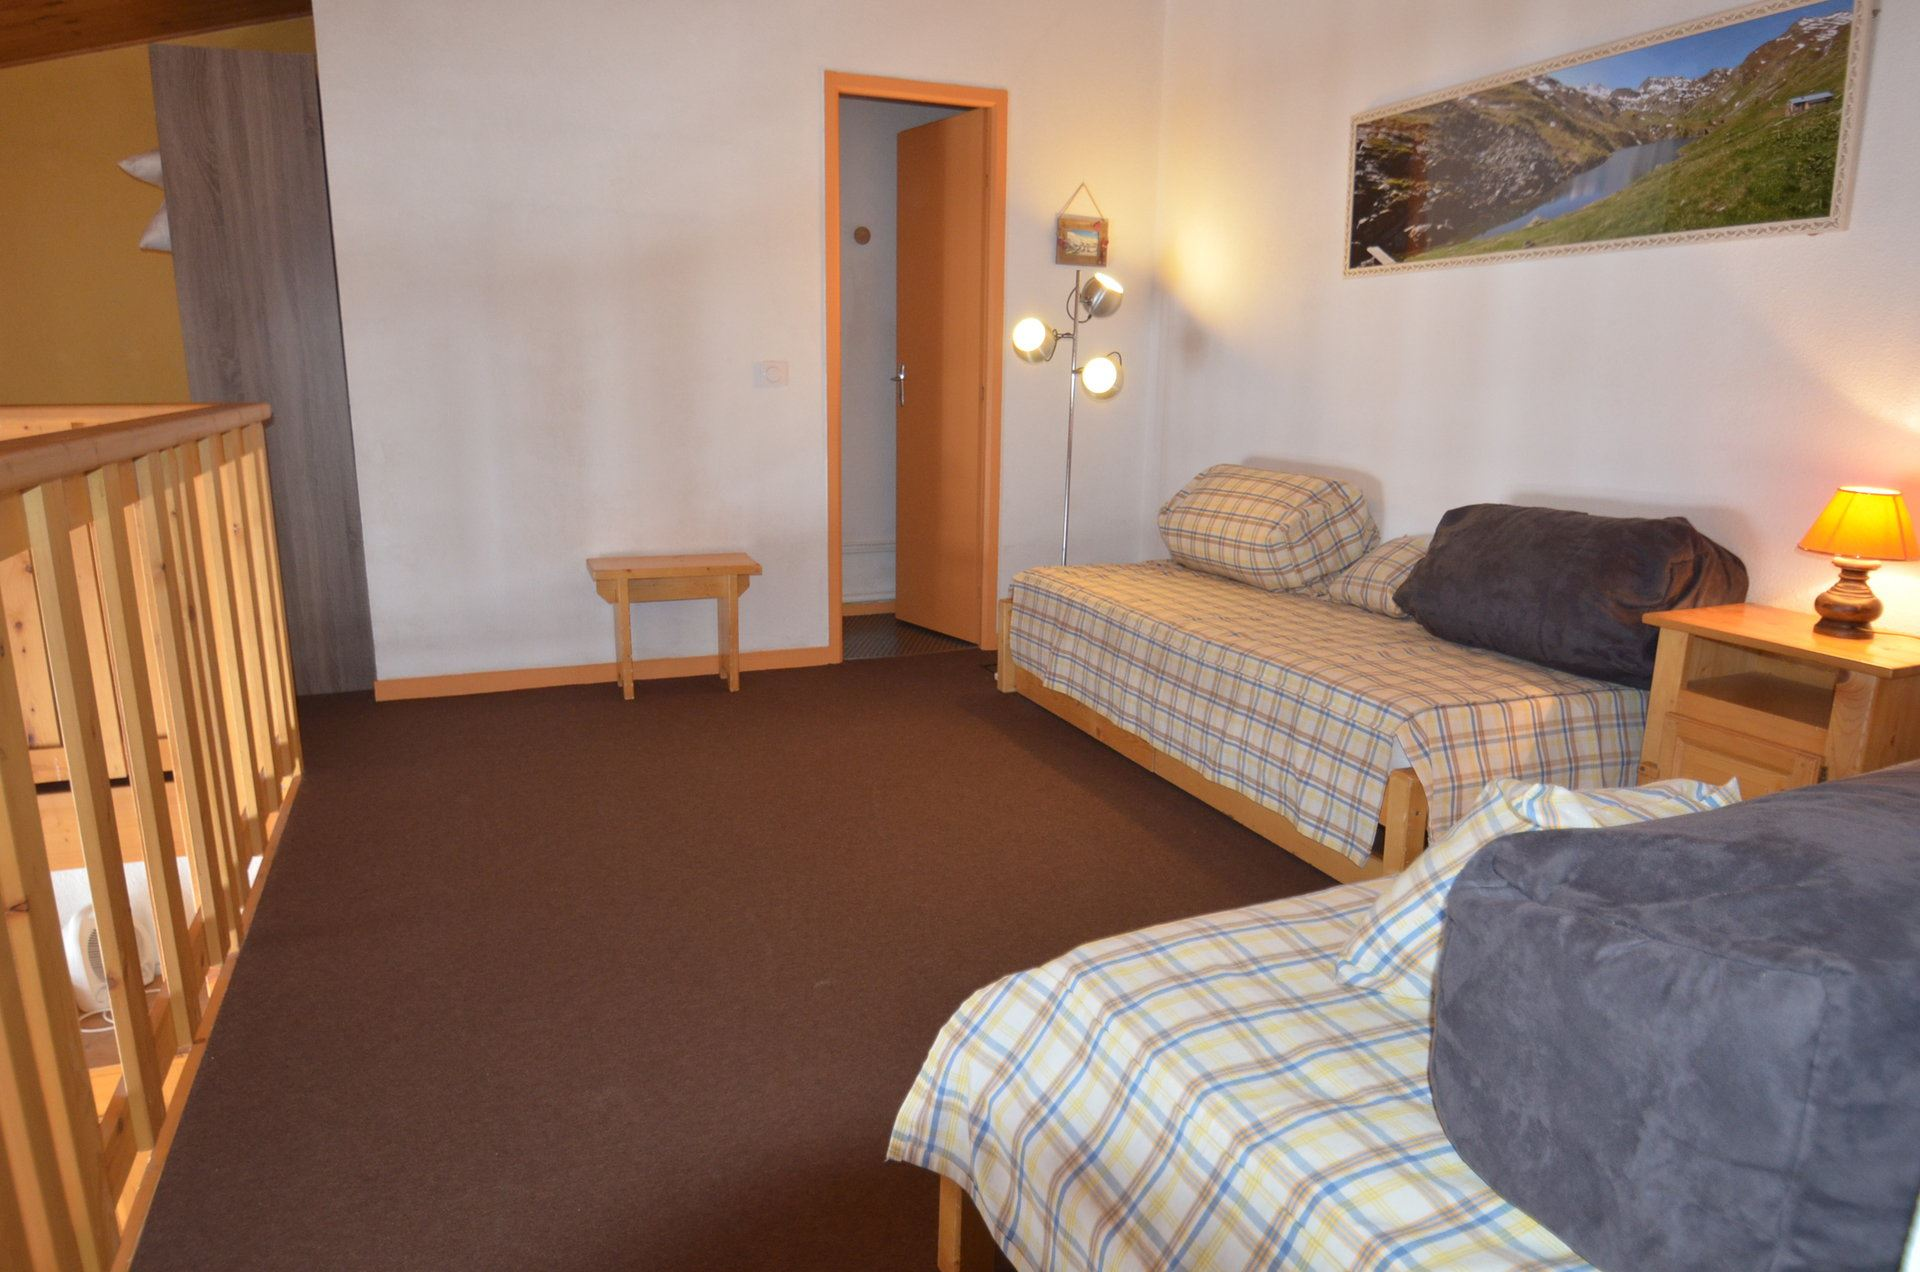 3 Rooms 7 Pers ski-in ski-out / JETAY 143